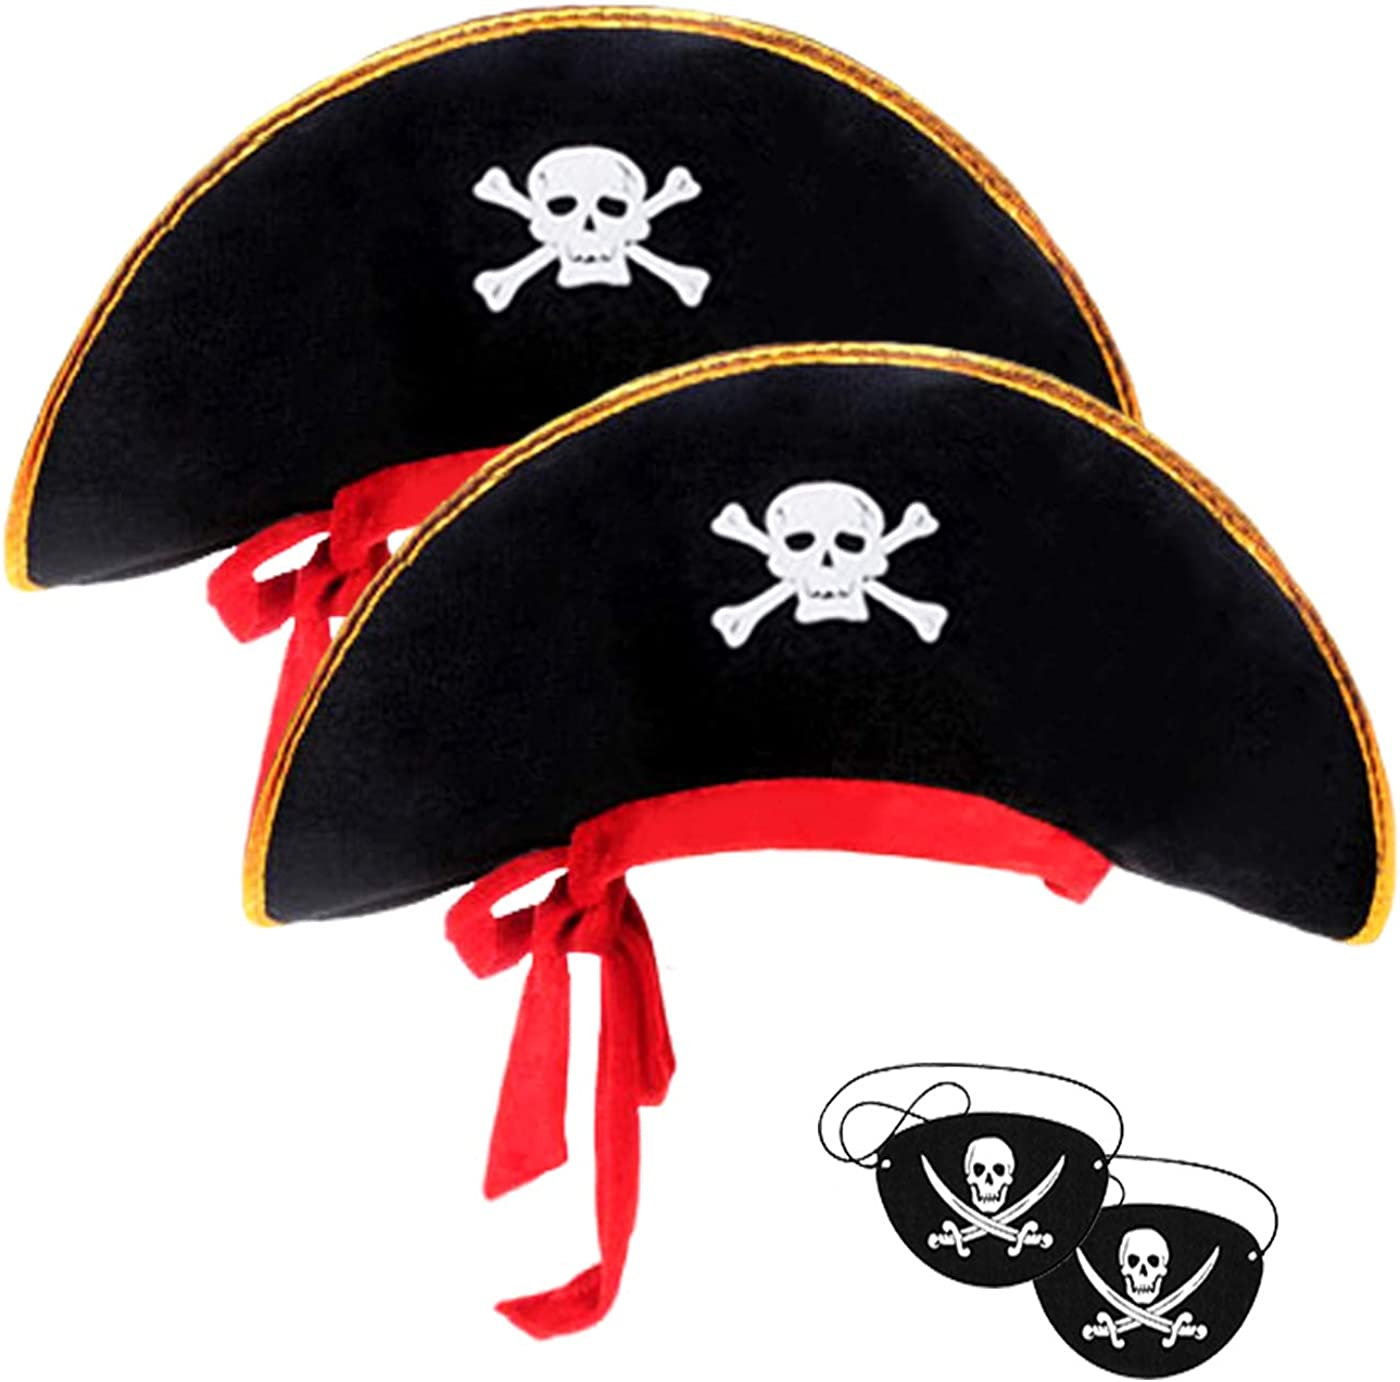 40% 2021new shipping free shipping OFF Cheap Sale 2pieces Skull Print Pirate Pira Captain Caribbean Hat